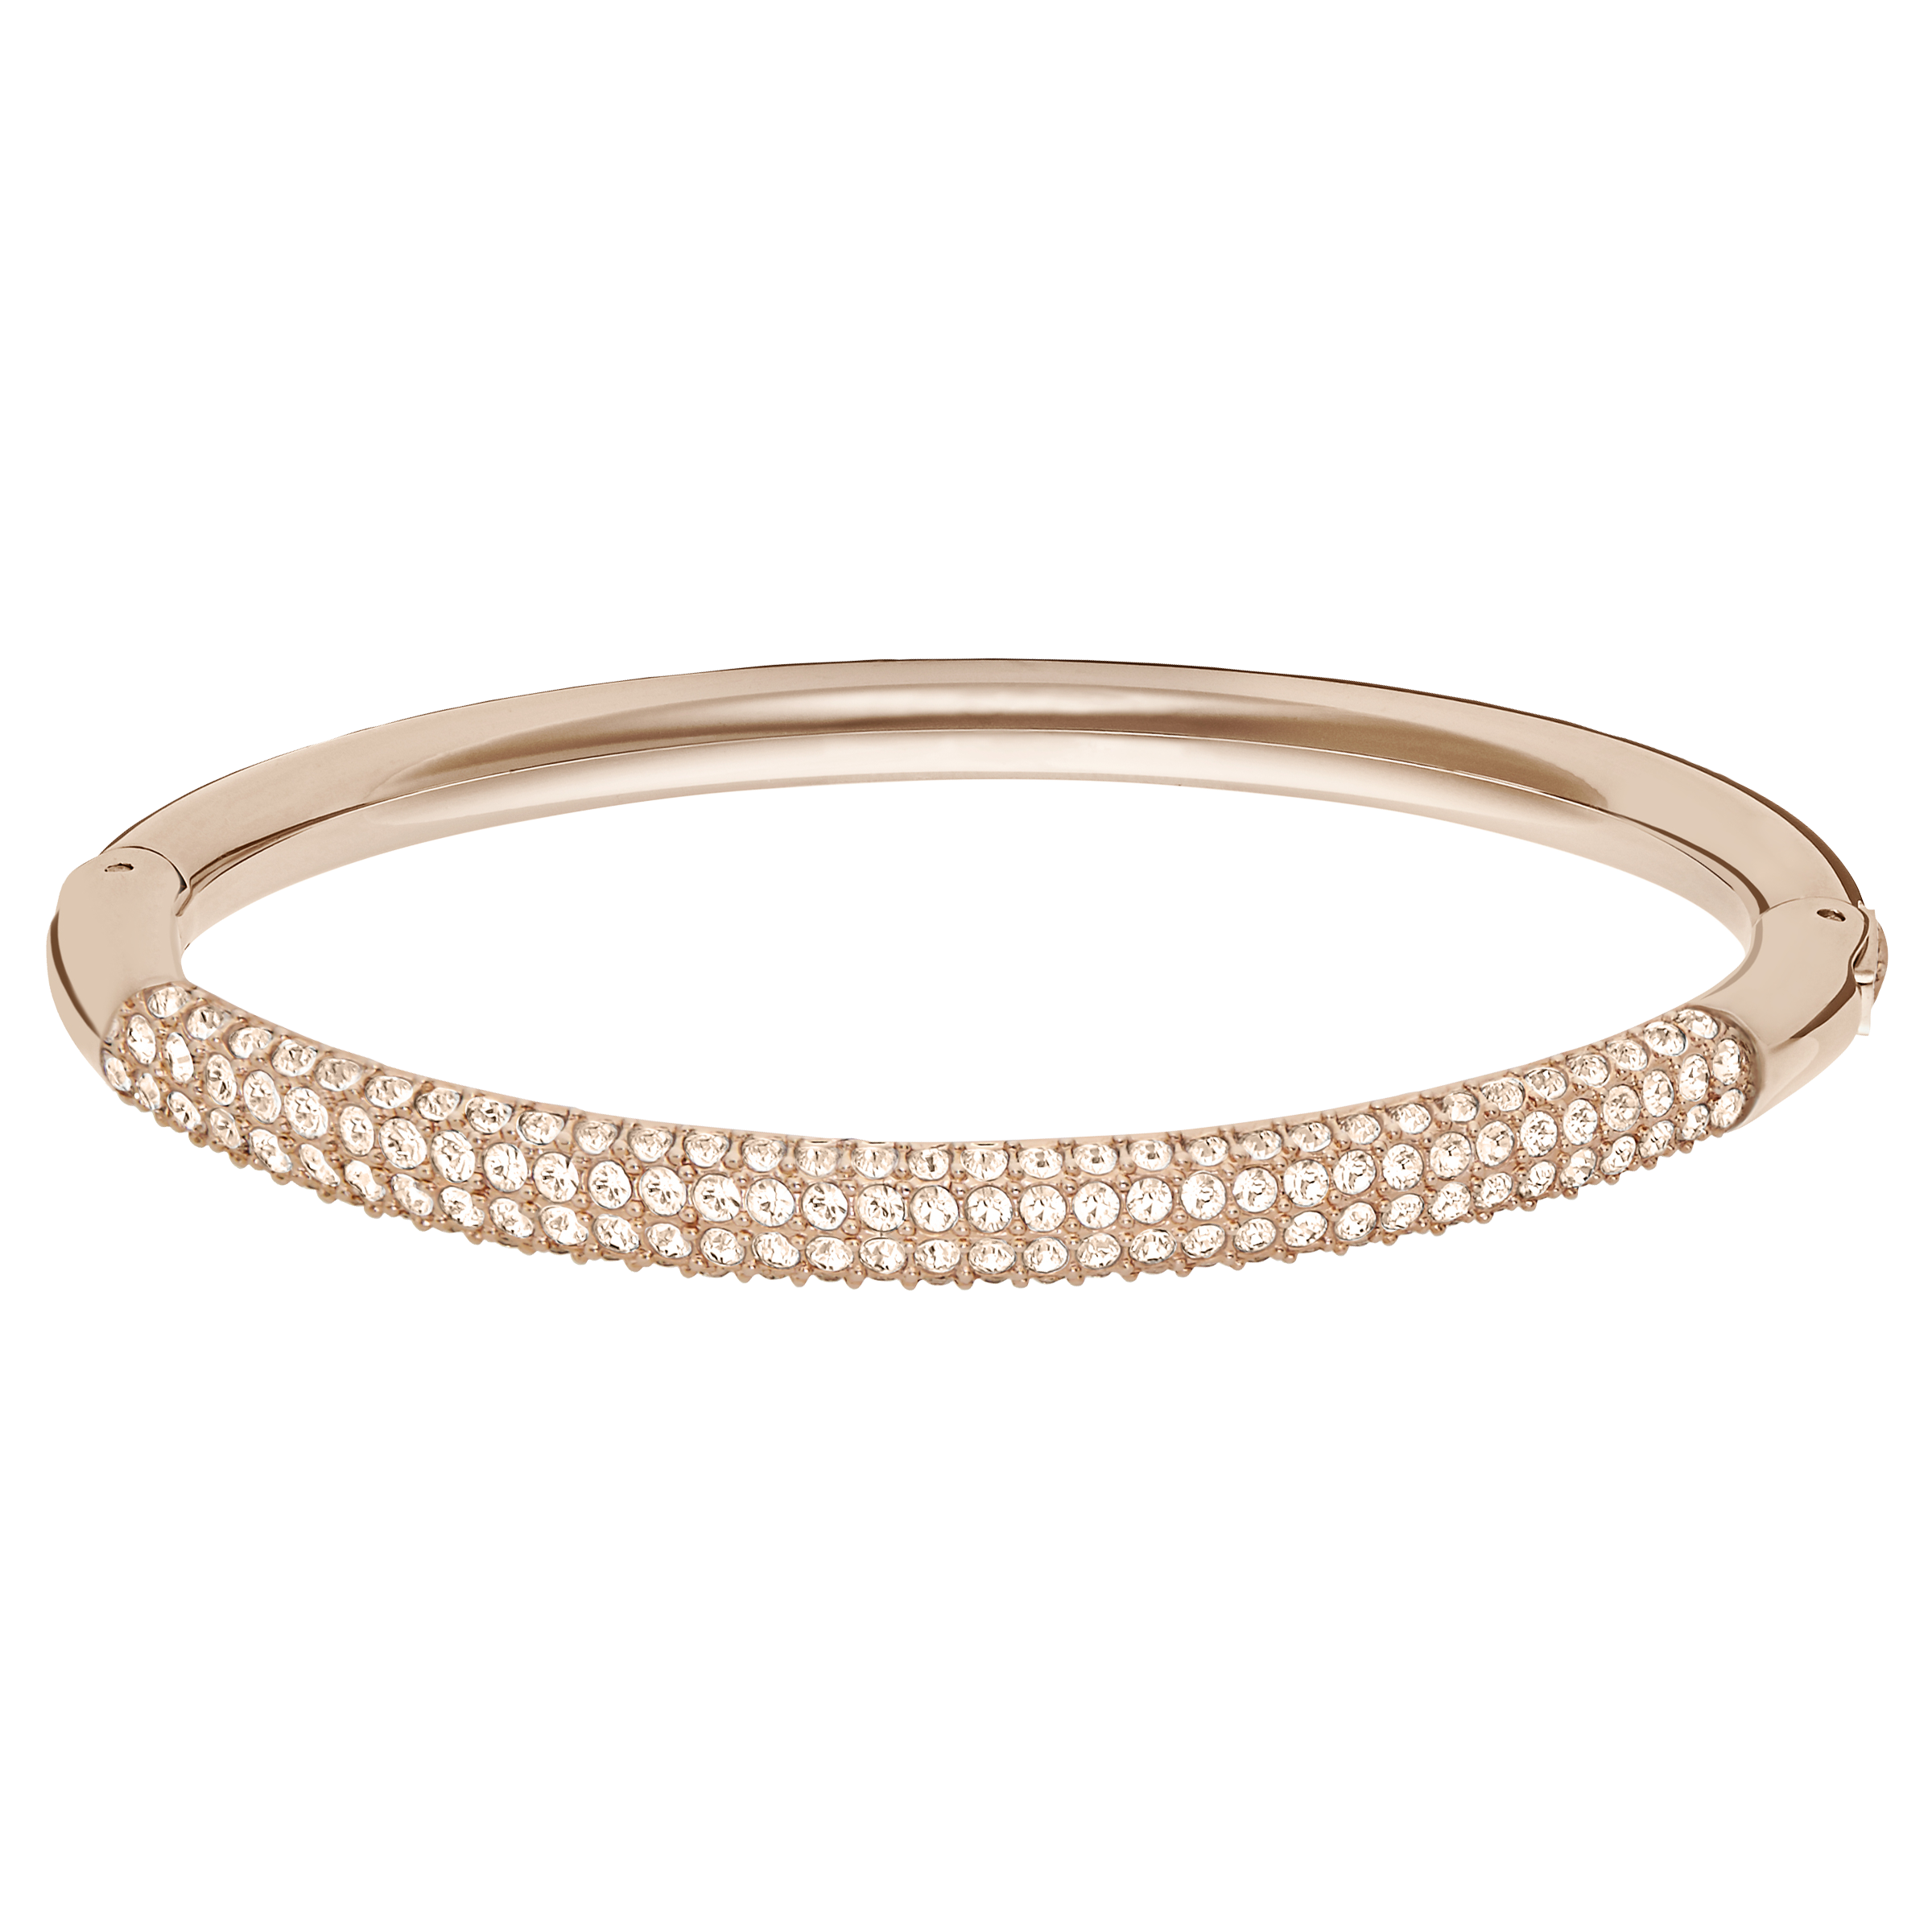 Stone Mini Bangle, White, Rose Gold Plated